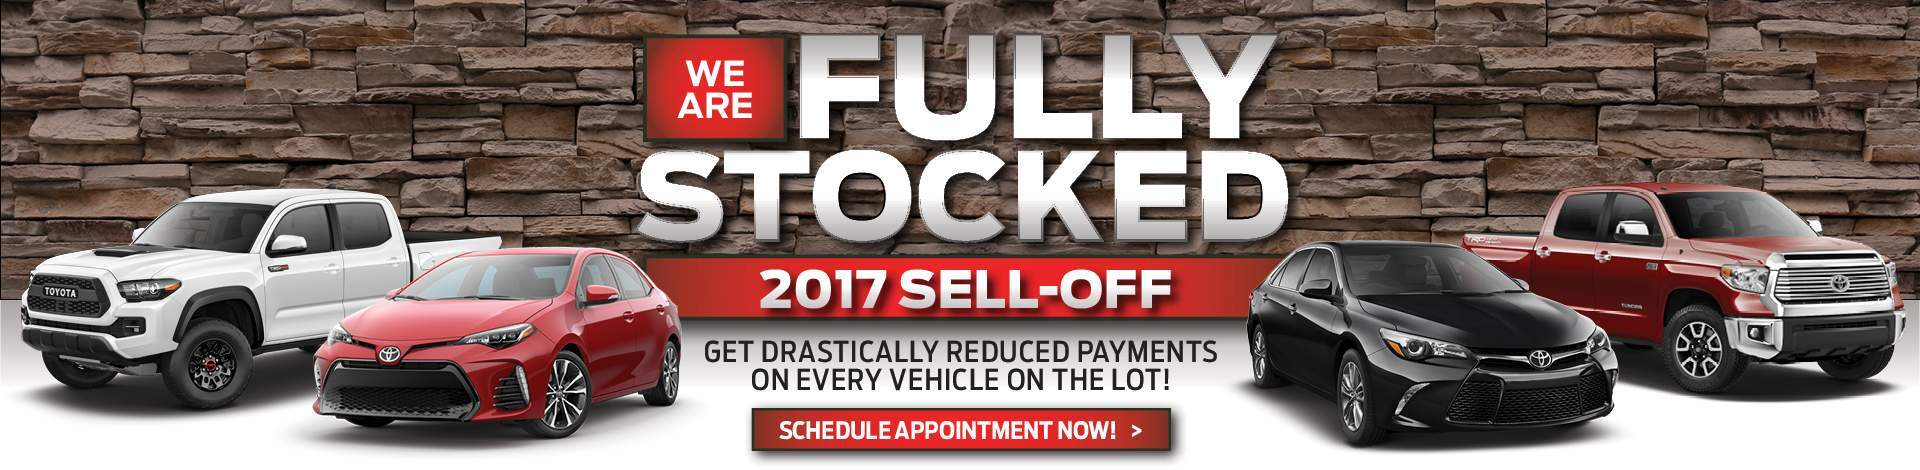 2017 Sell-off at Ed Morse Delray Toyota